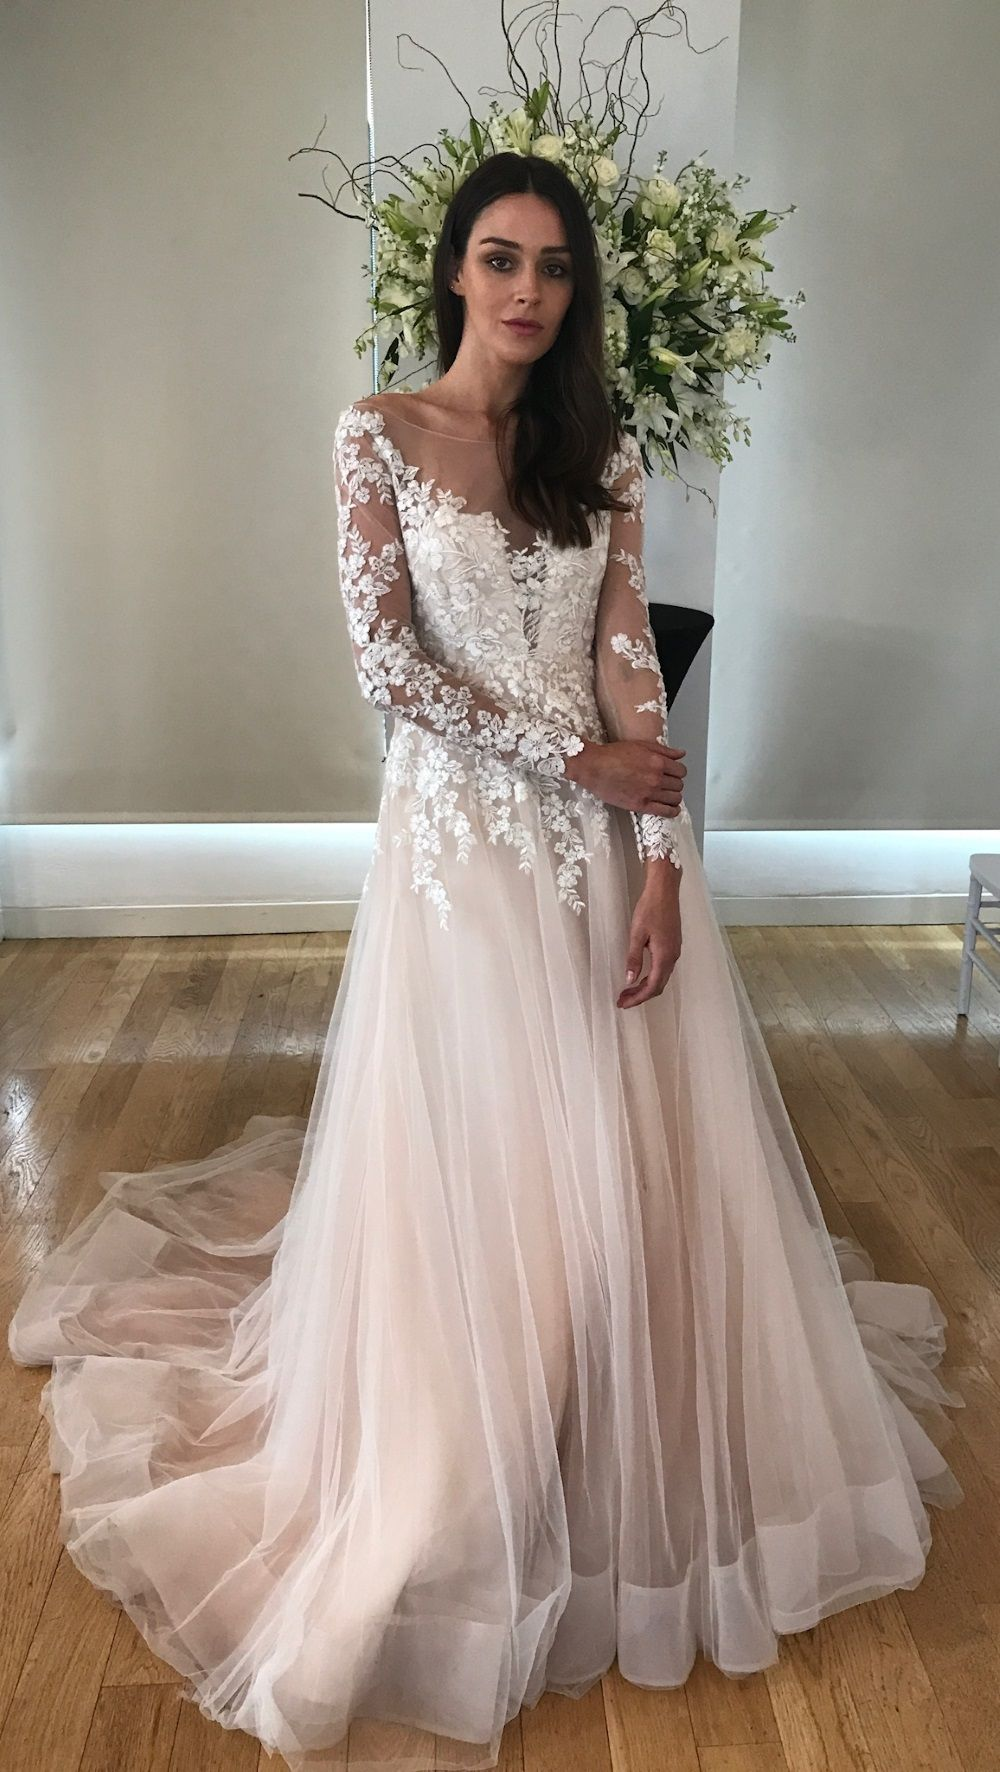 Blush Pink Wedding Dress With Illusion Sleeves Wedding Dresses Blush Ball Gown Wedding Dress Blush Pink Wedding Dress